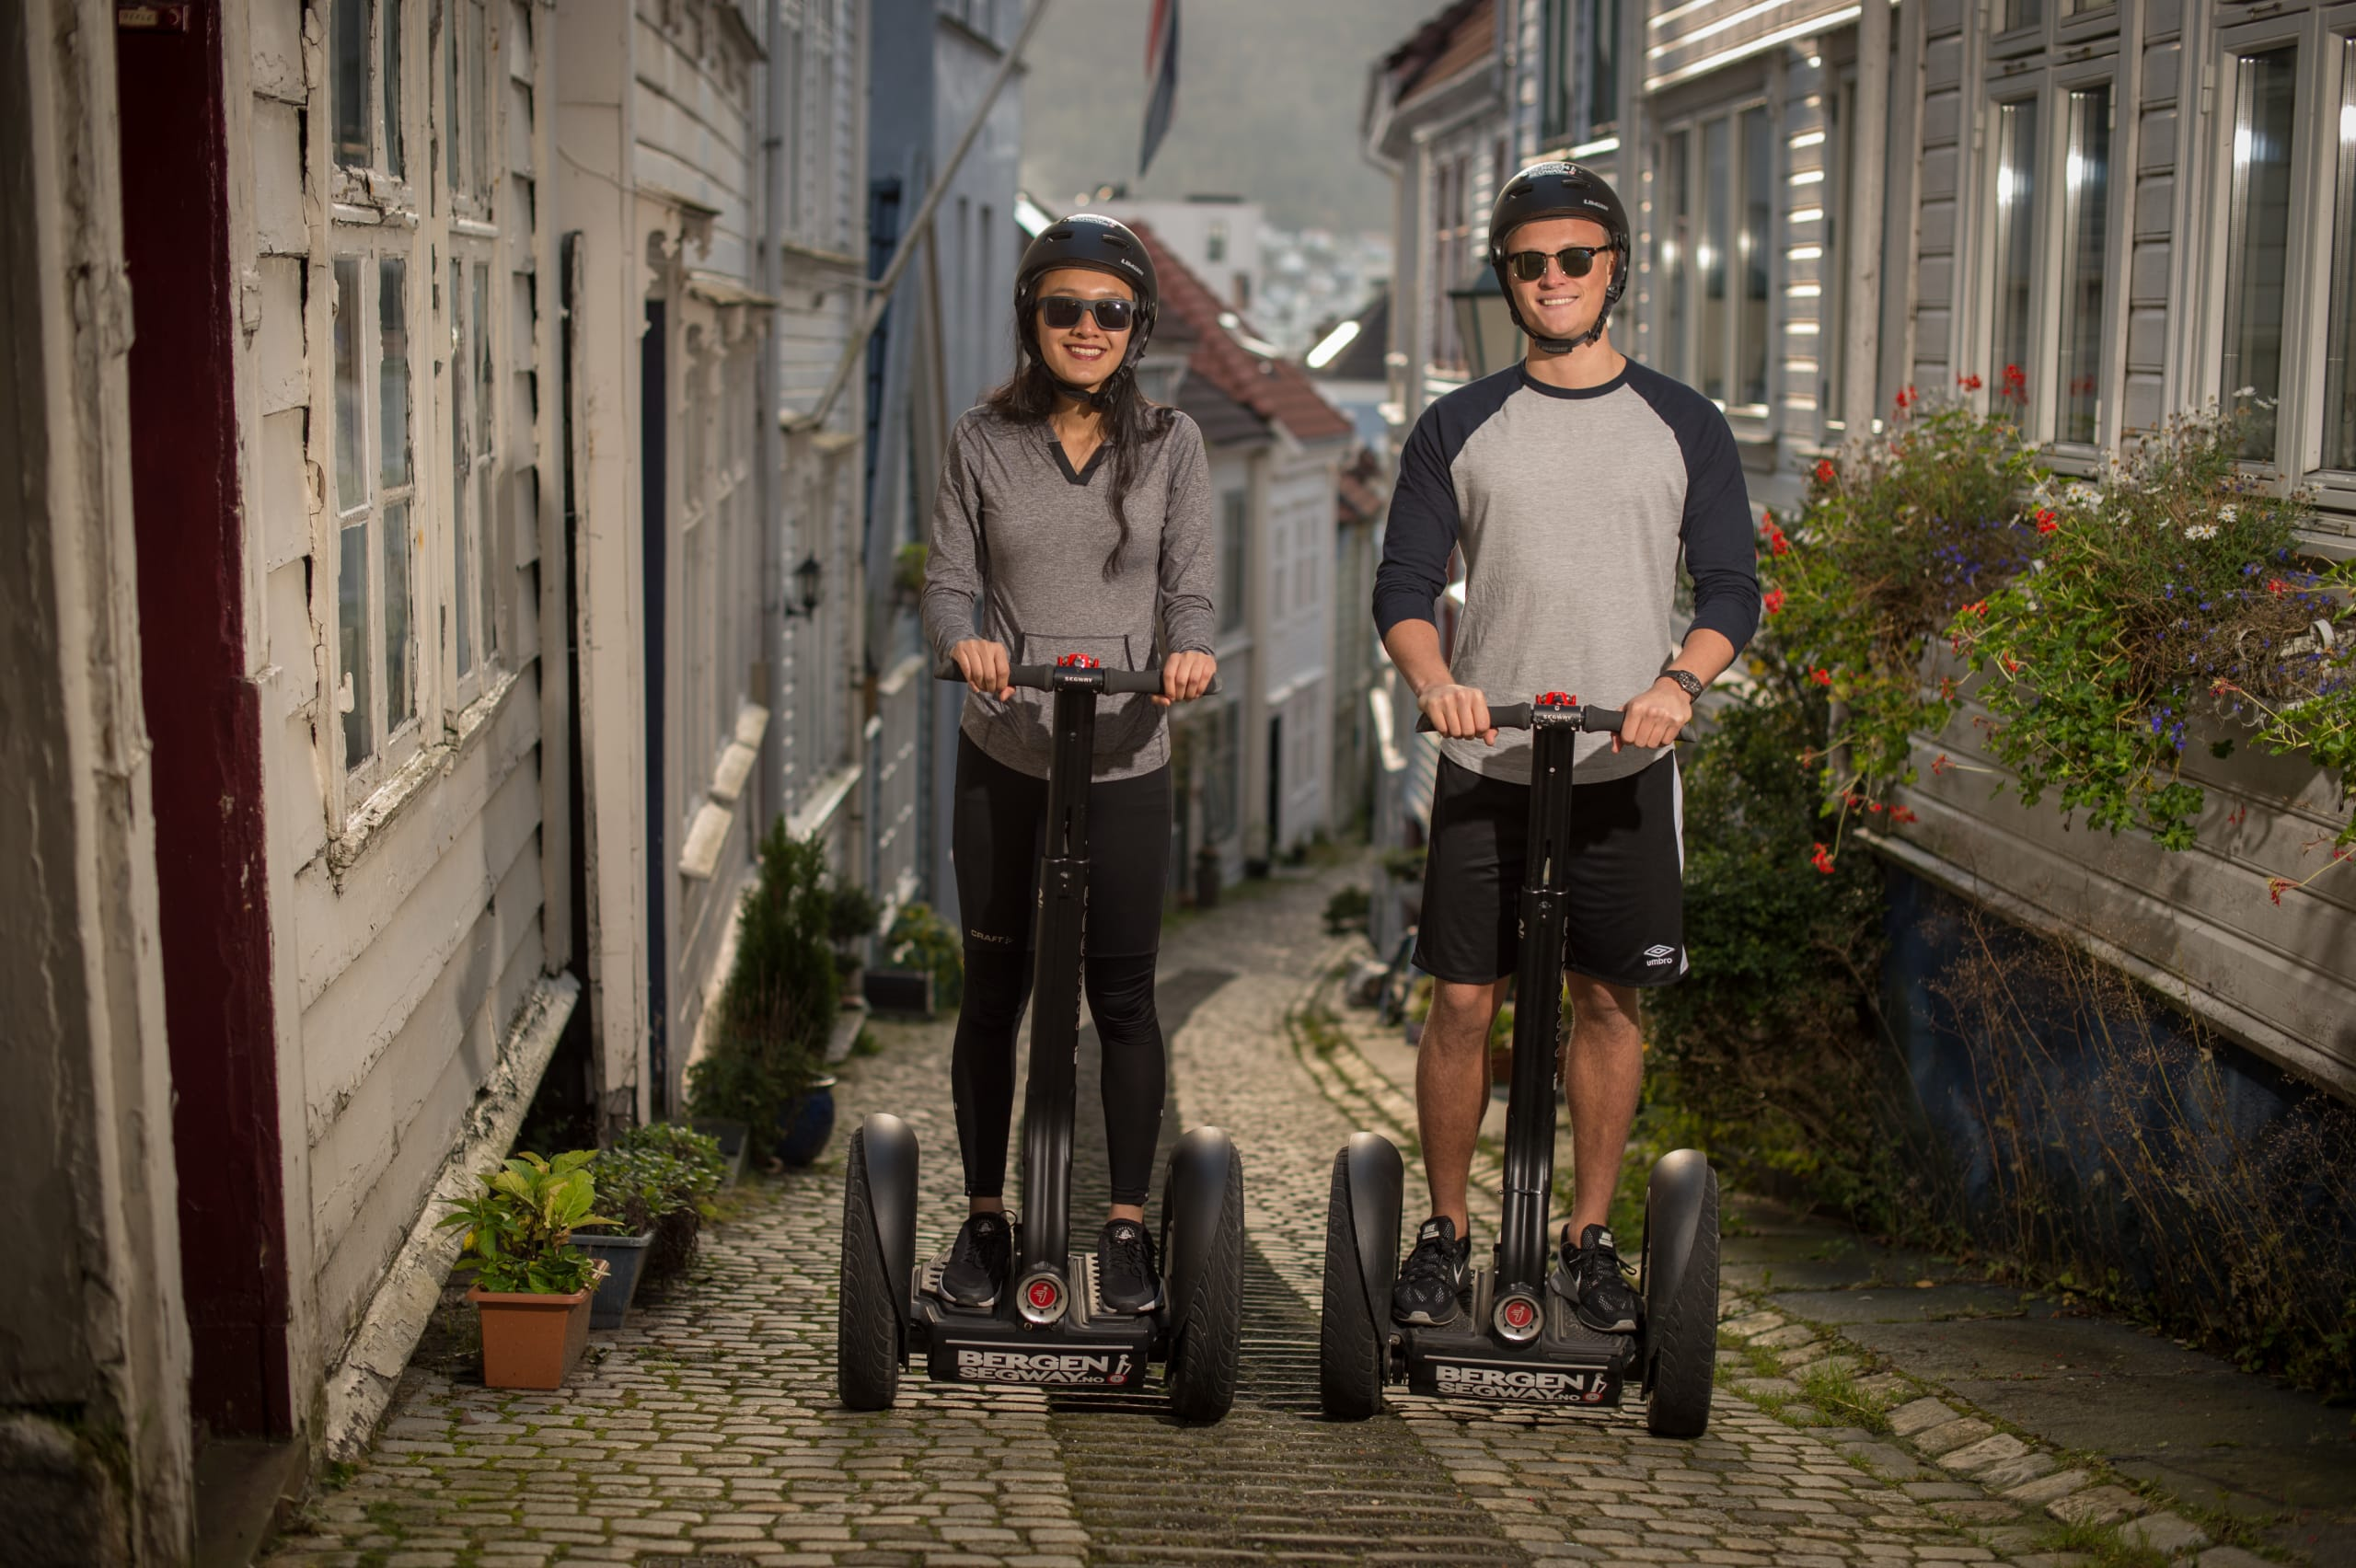 Segway tour in the old parts of Bergen